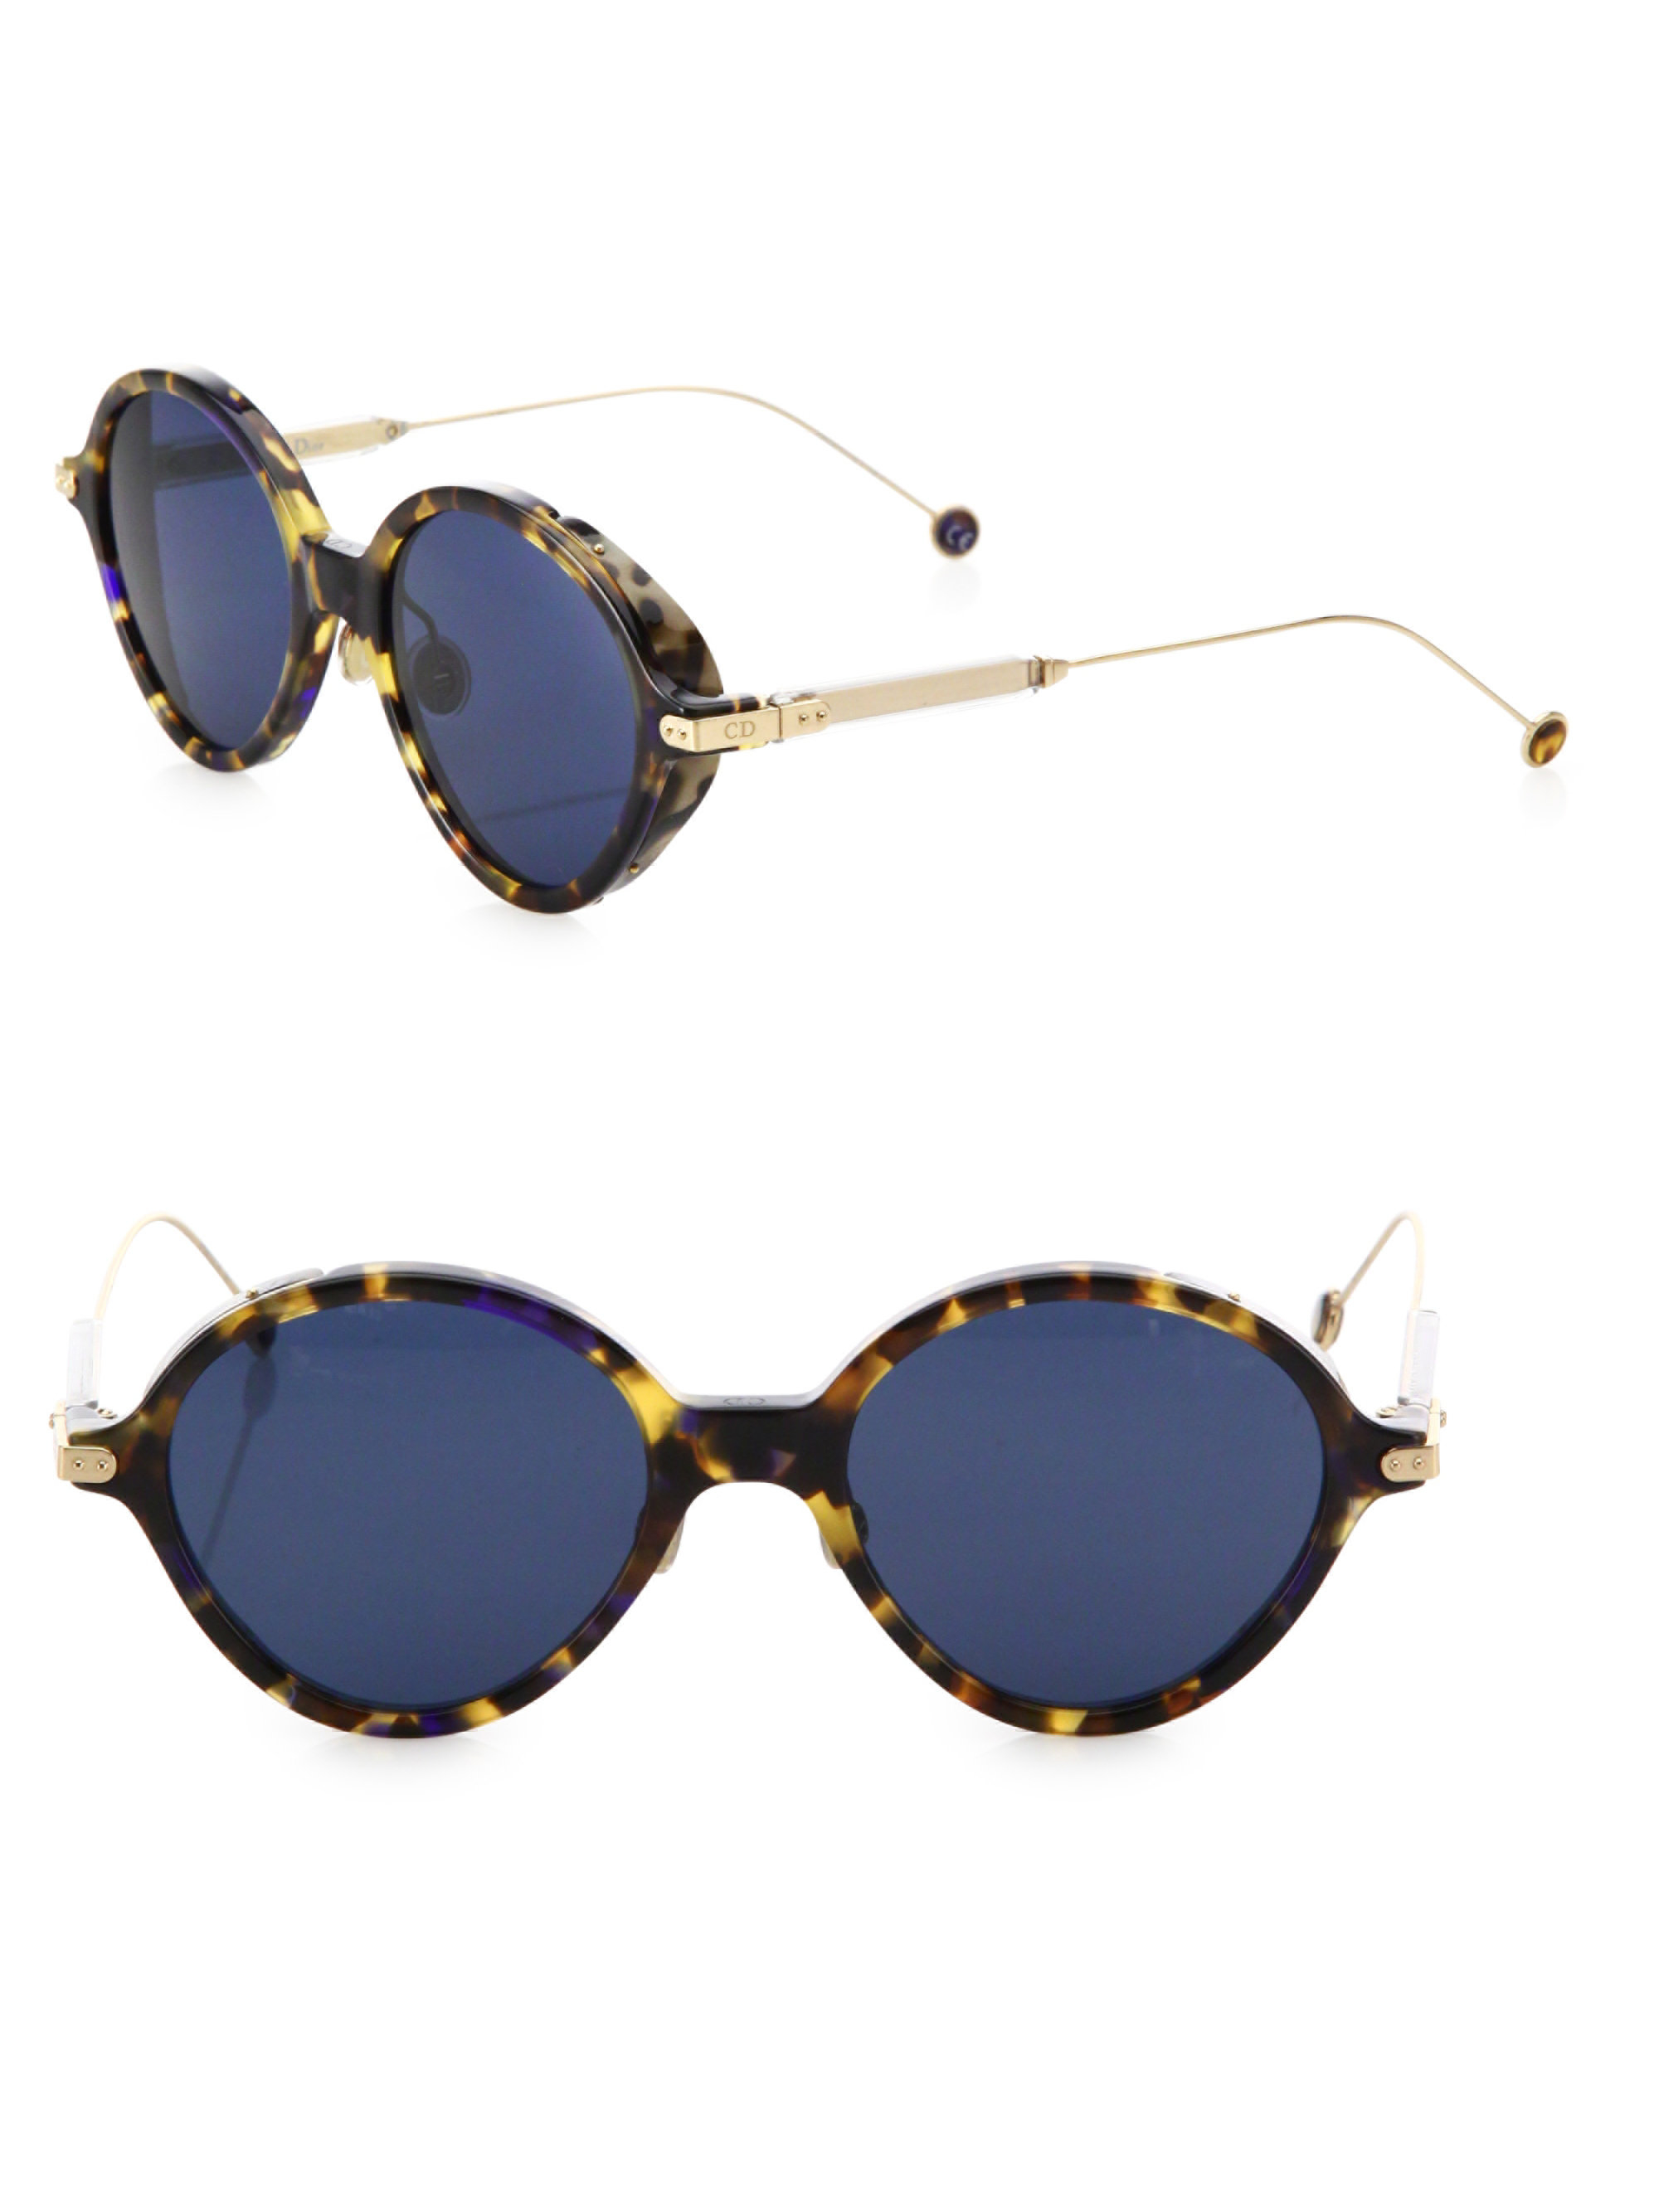 85483b1766 Lyst - Dior Umbrage 52mm Oval Sunglasses in Blue